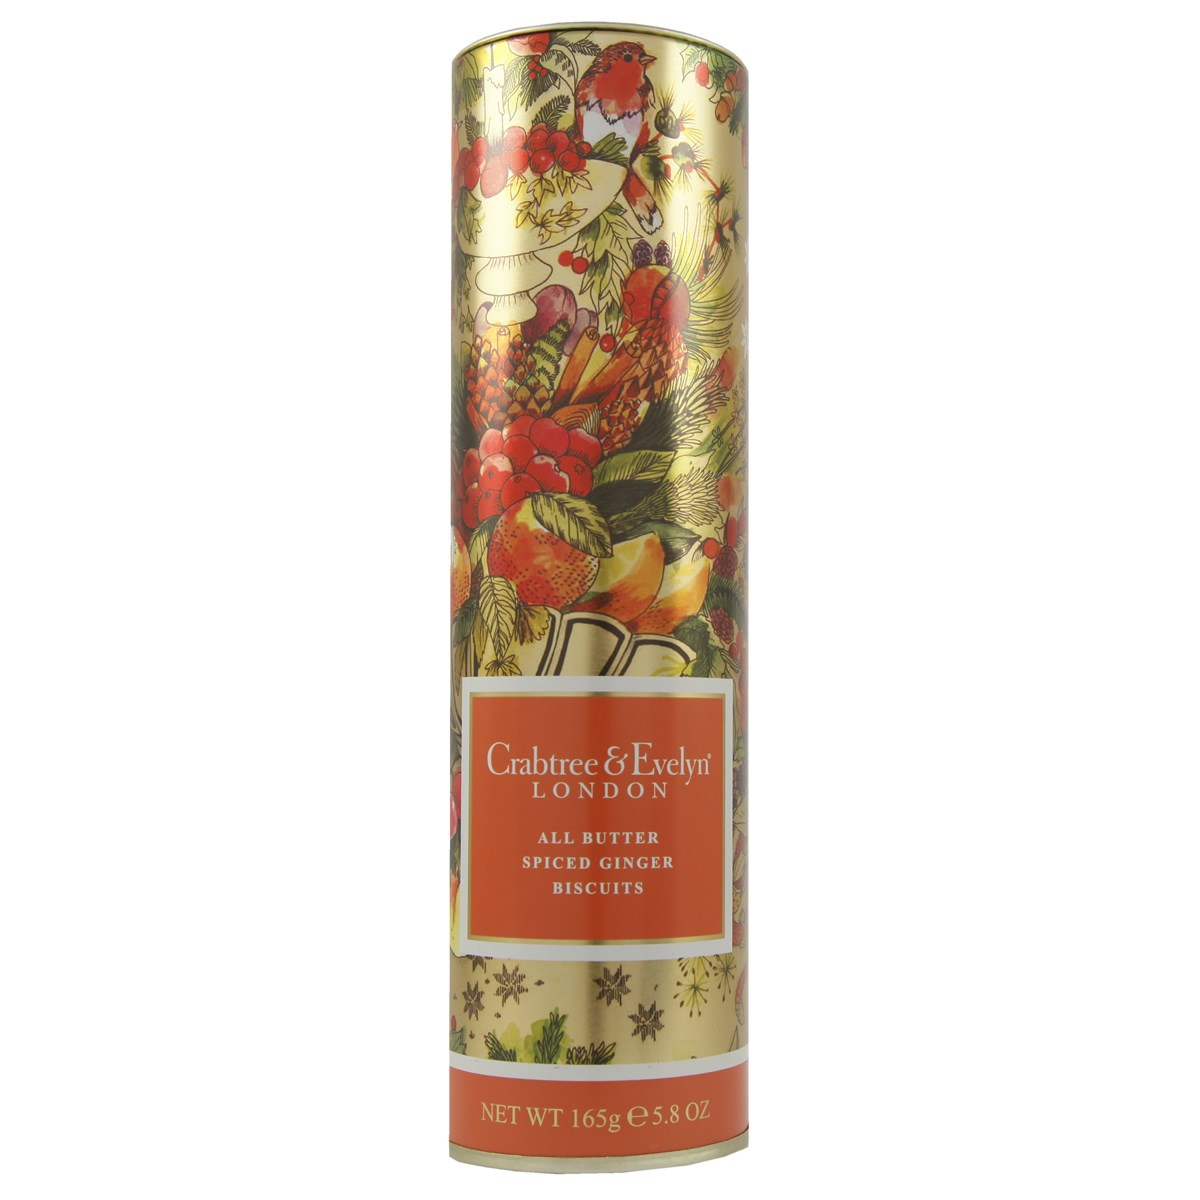 Crabtree & Evelyn Fine Foods Spiced Ginger Biscuits